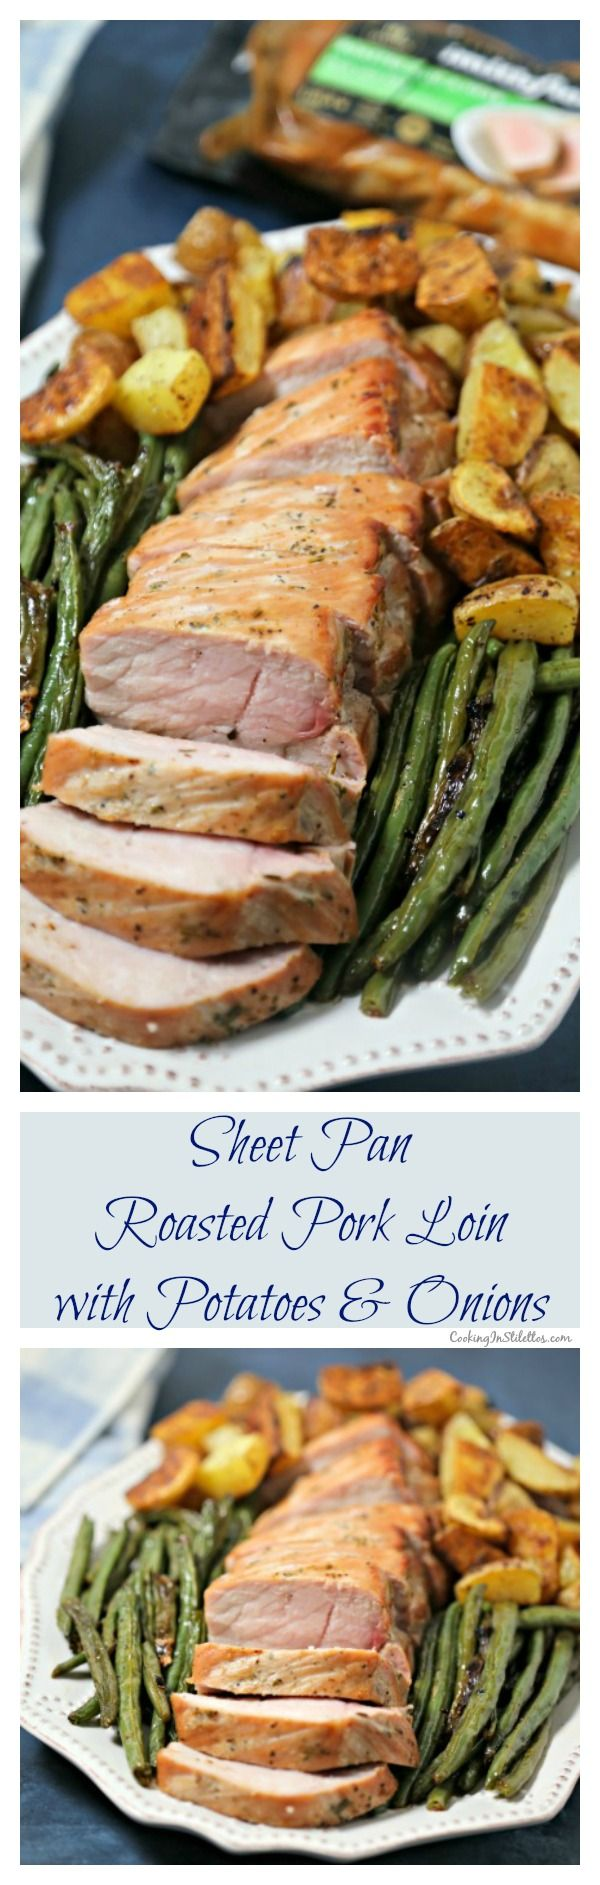 For busy weeknights, make this scrumptious Sheet Pan Roasted Pork Loin with Potatoes and Green Beans from CookingInStilettos.com. Ready in 30 minutes thanks to Smithfield® Marinated Fresh Pork, this easy sheet pan dinner will be a family favorite!  #RealFlavorRealFast With @SmithfieldFoods and @Walmart. Sponsored | Roasted Pork Loin | Sheet Pan Dinner | 30 Minute Meal | Weeknight Dinner Recipe | Pork | Oven Roasted Pork | Pork Loin Filet | Smithfield Pork Recipe via @CookInStilettos